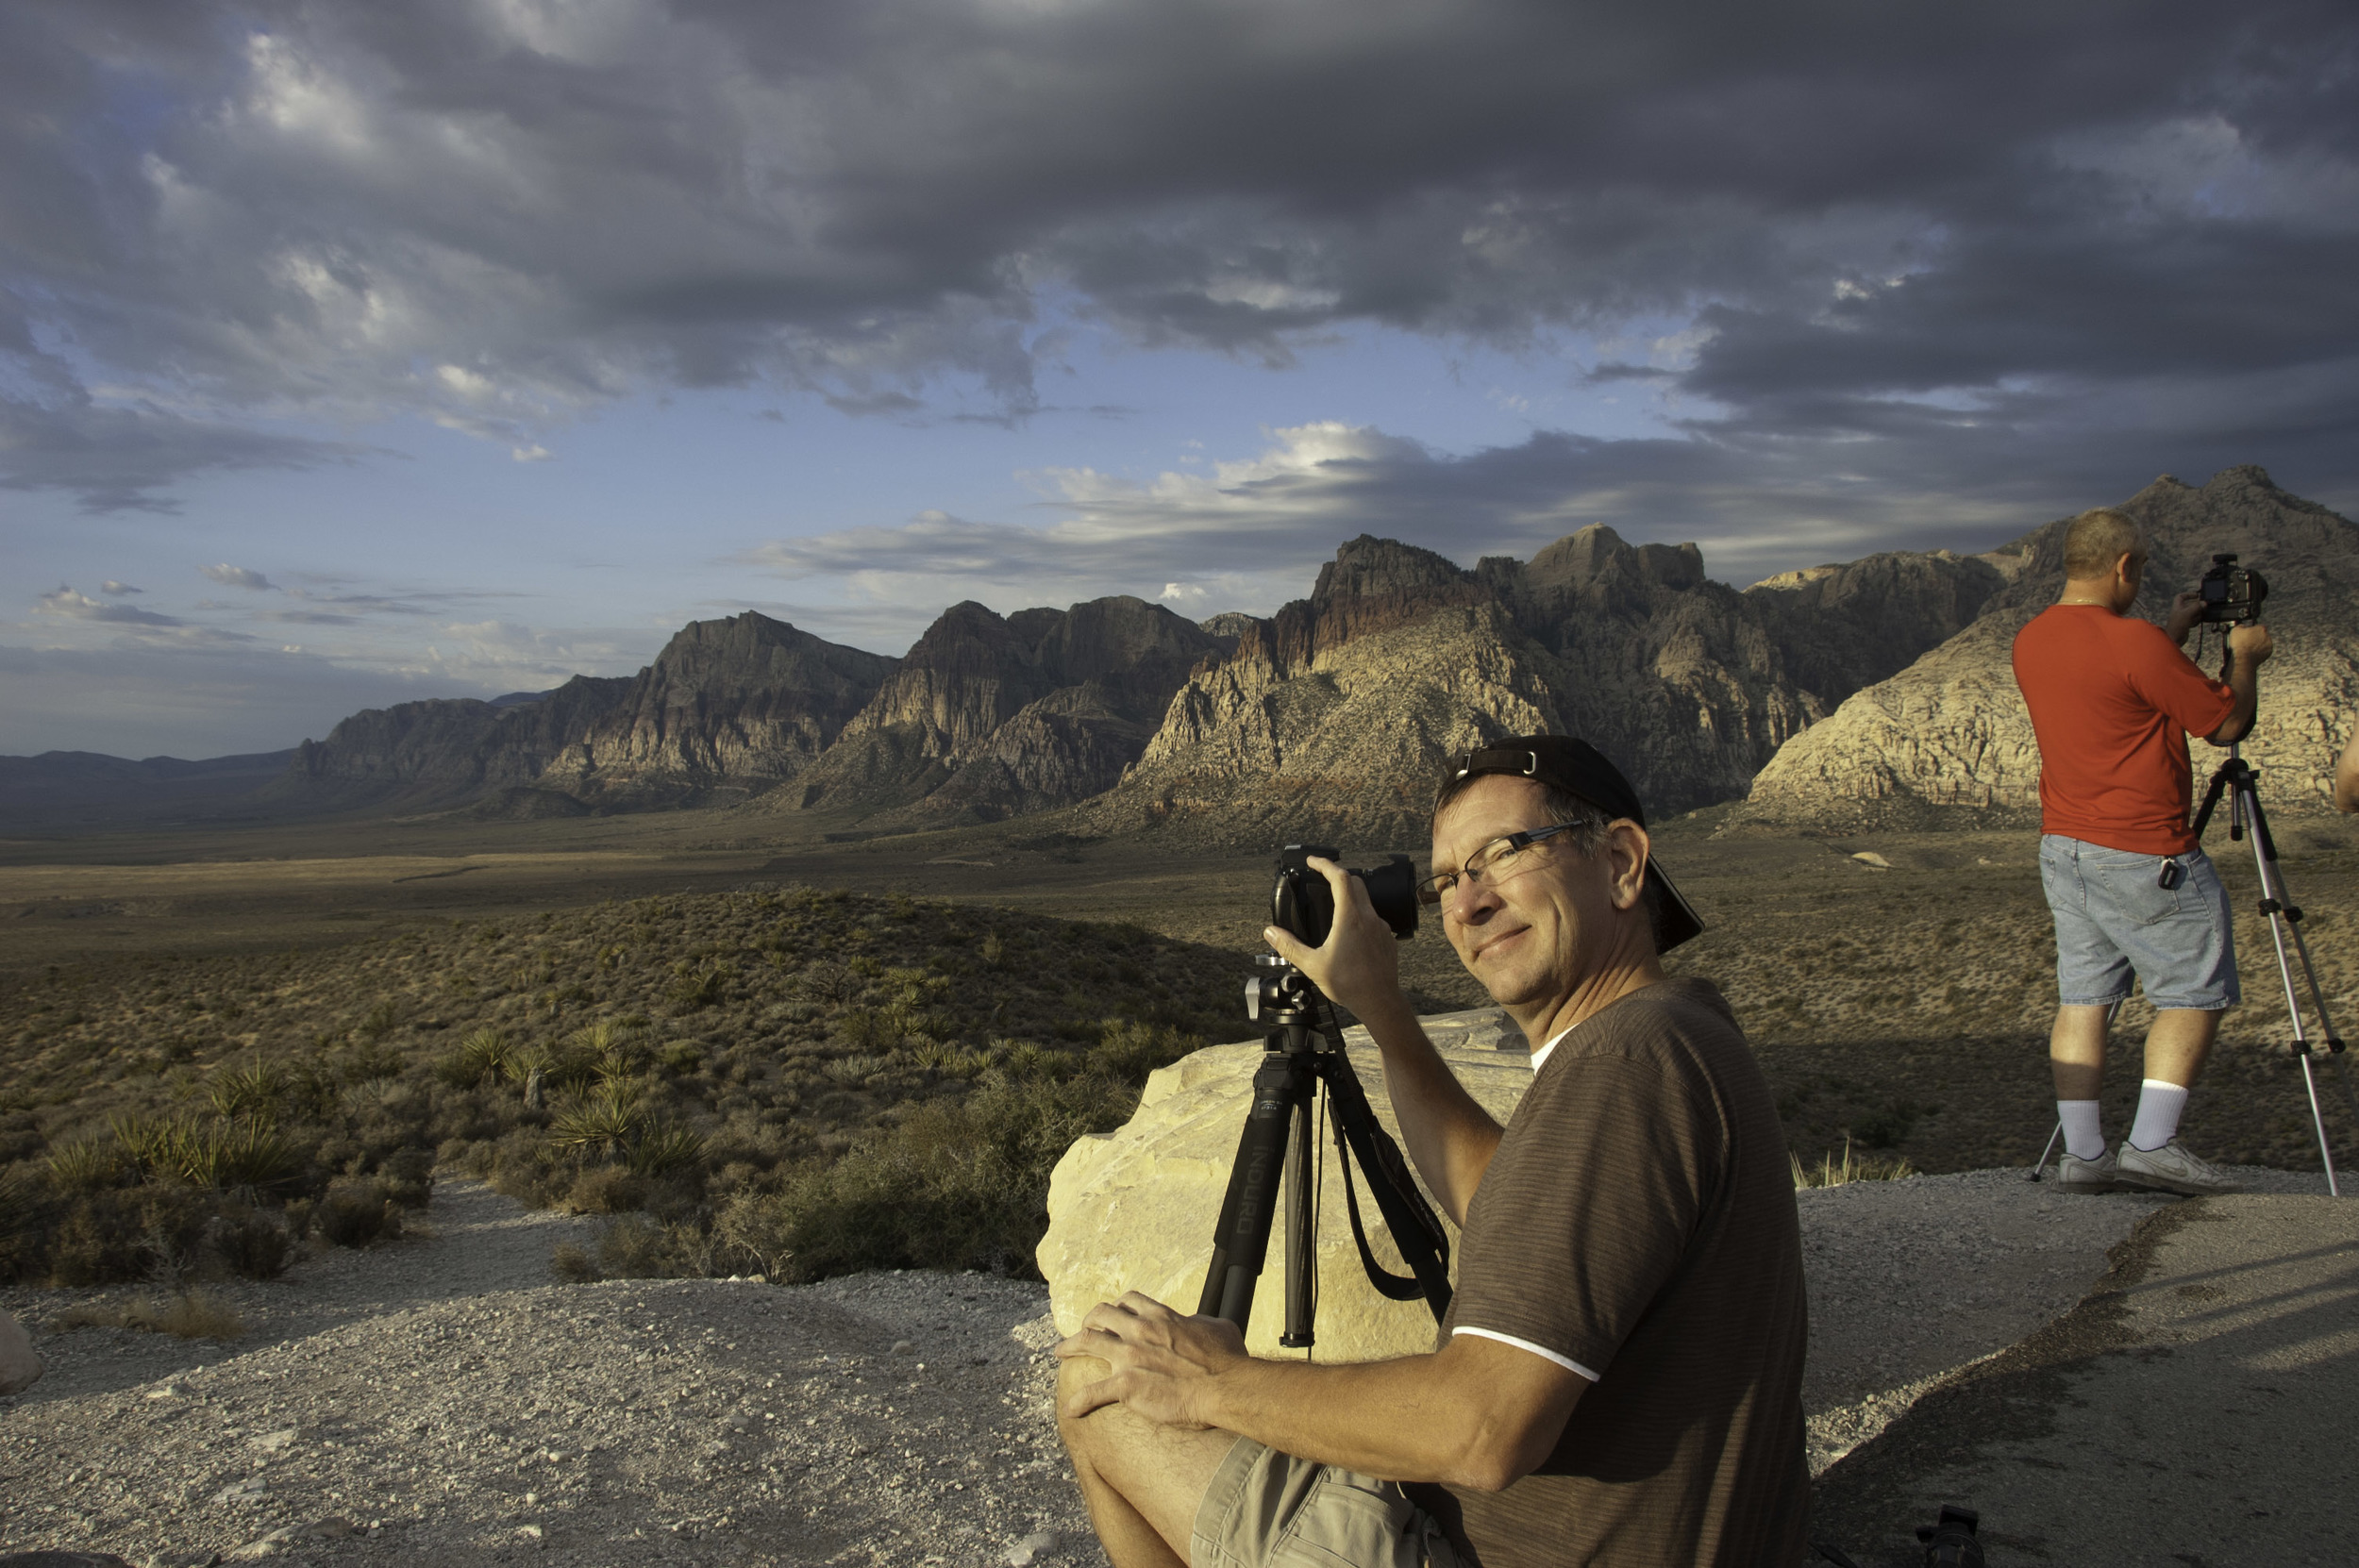 A photo of Steve, photographing at Red Rock Canyon near Las Vegas, NV